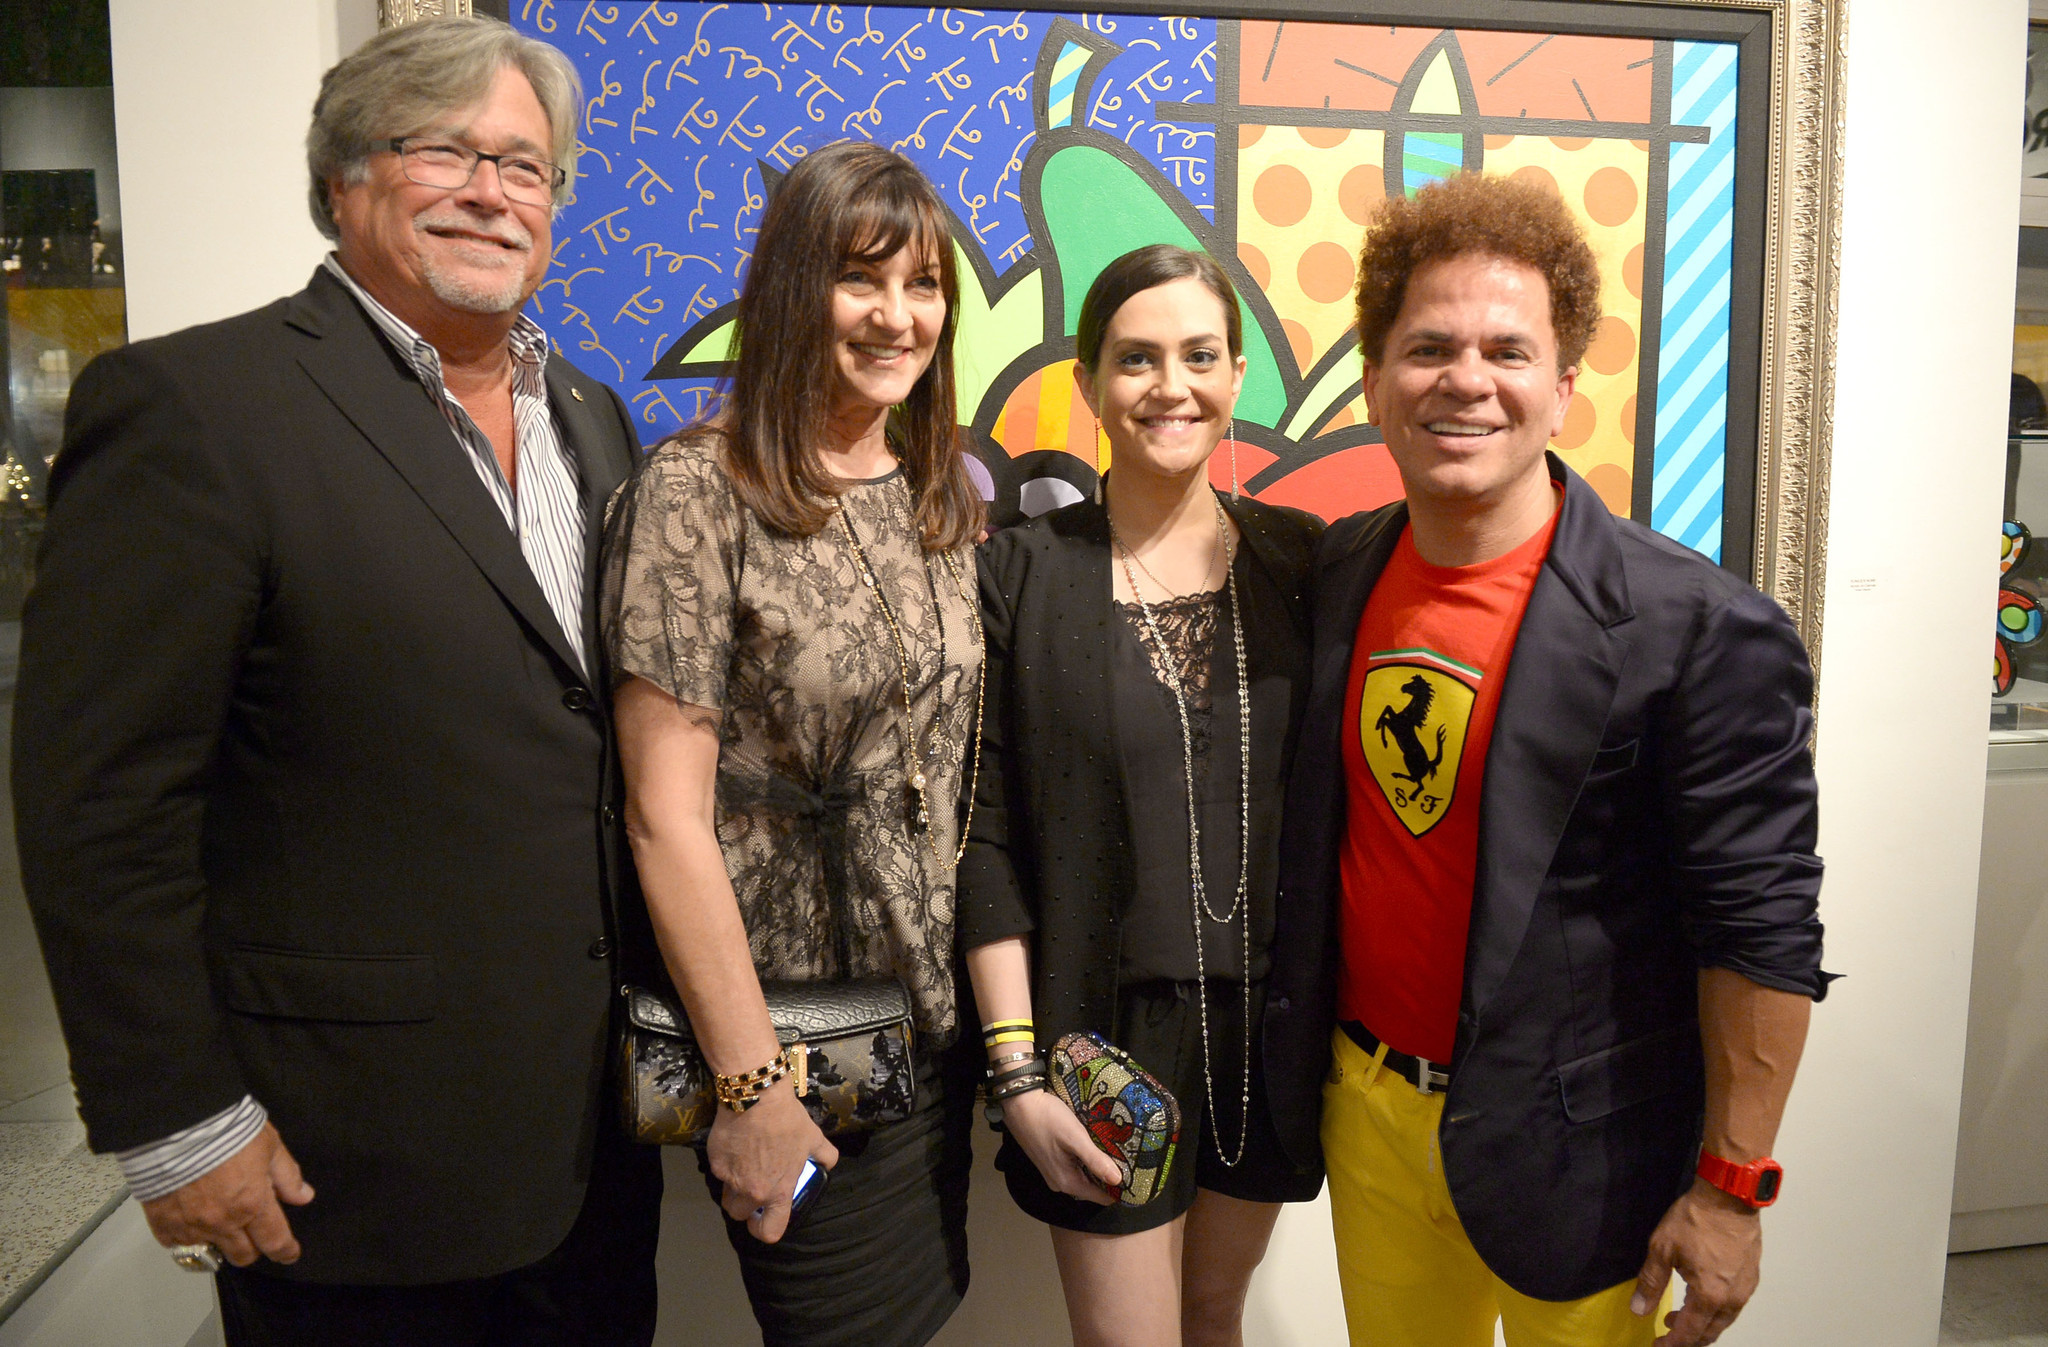 Celeb-spotting around South Florida - Britto Central Gallery